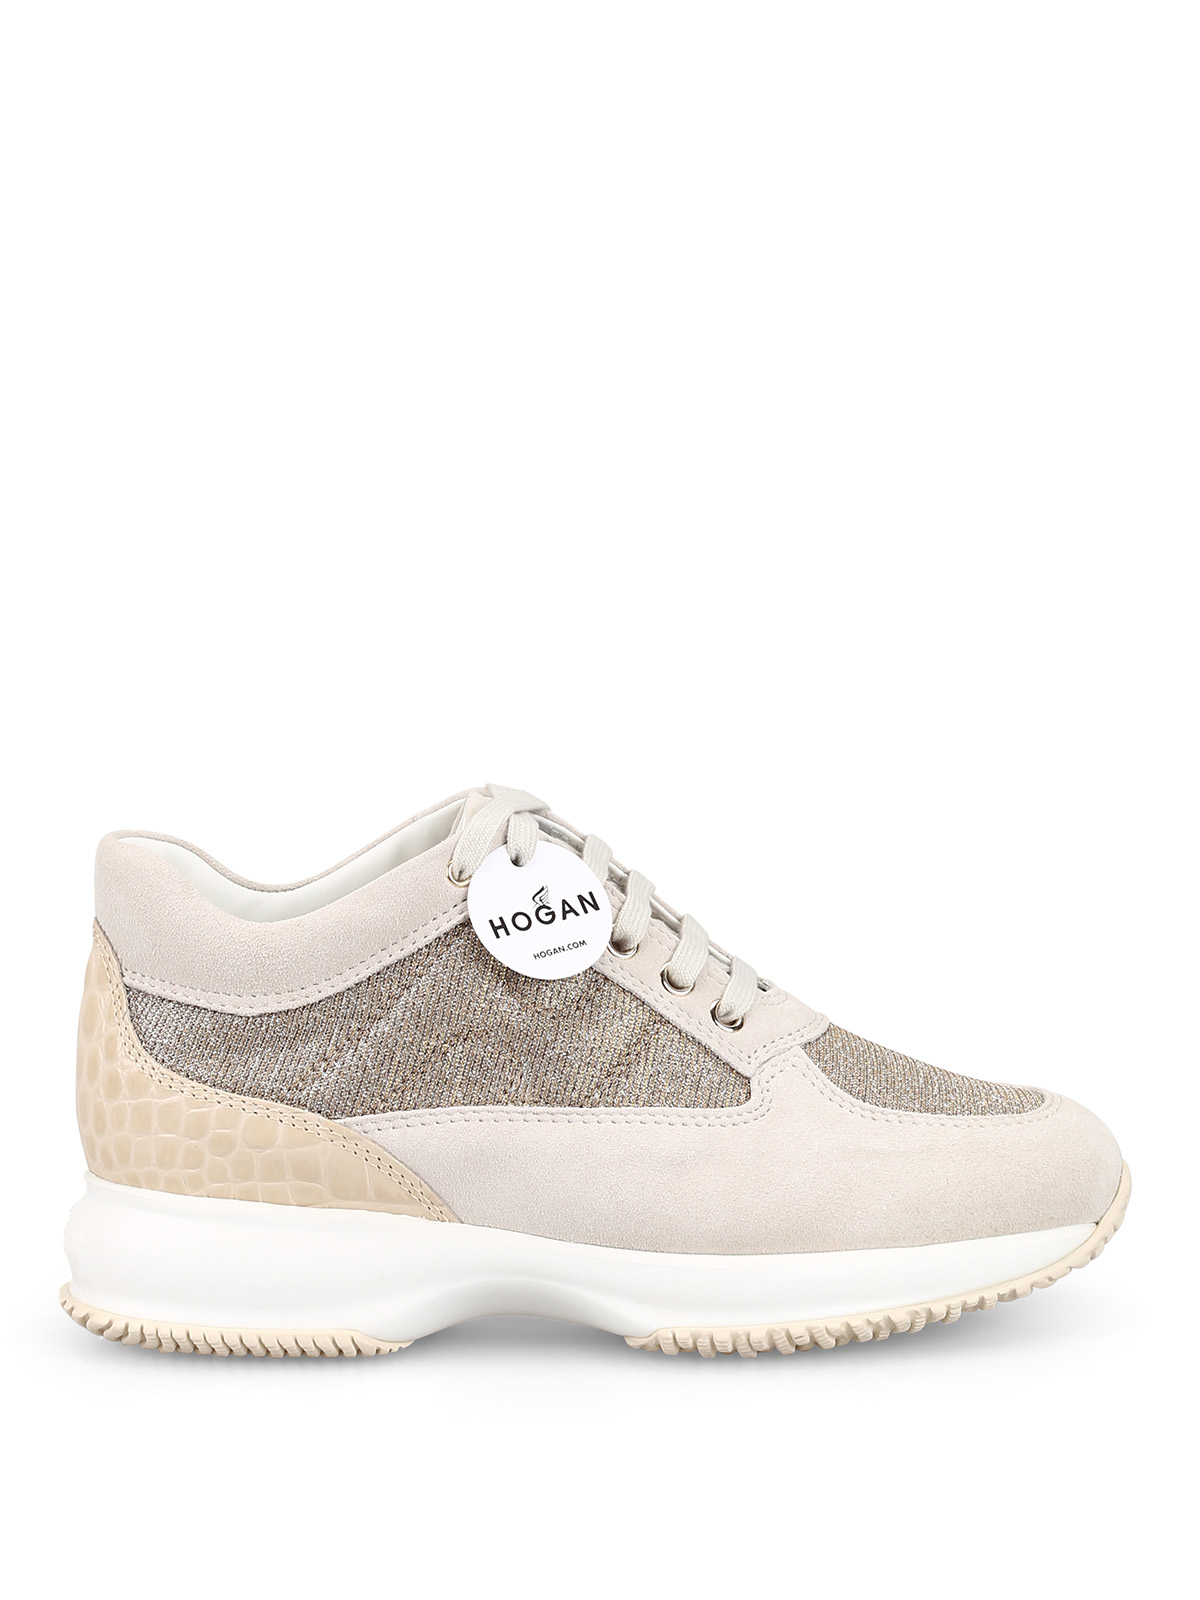 4b5cec5034 Hogan - Interactive beige suede and lurex sneakers - trainers ...